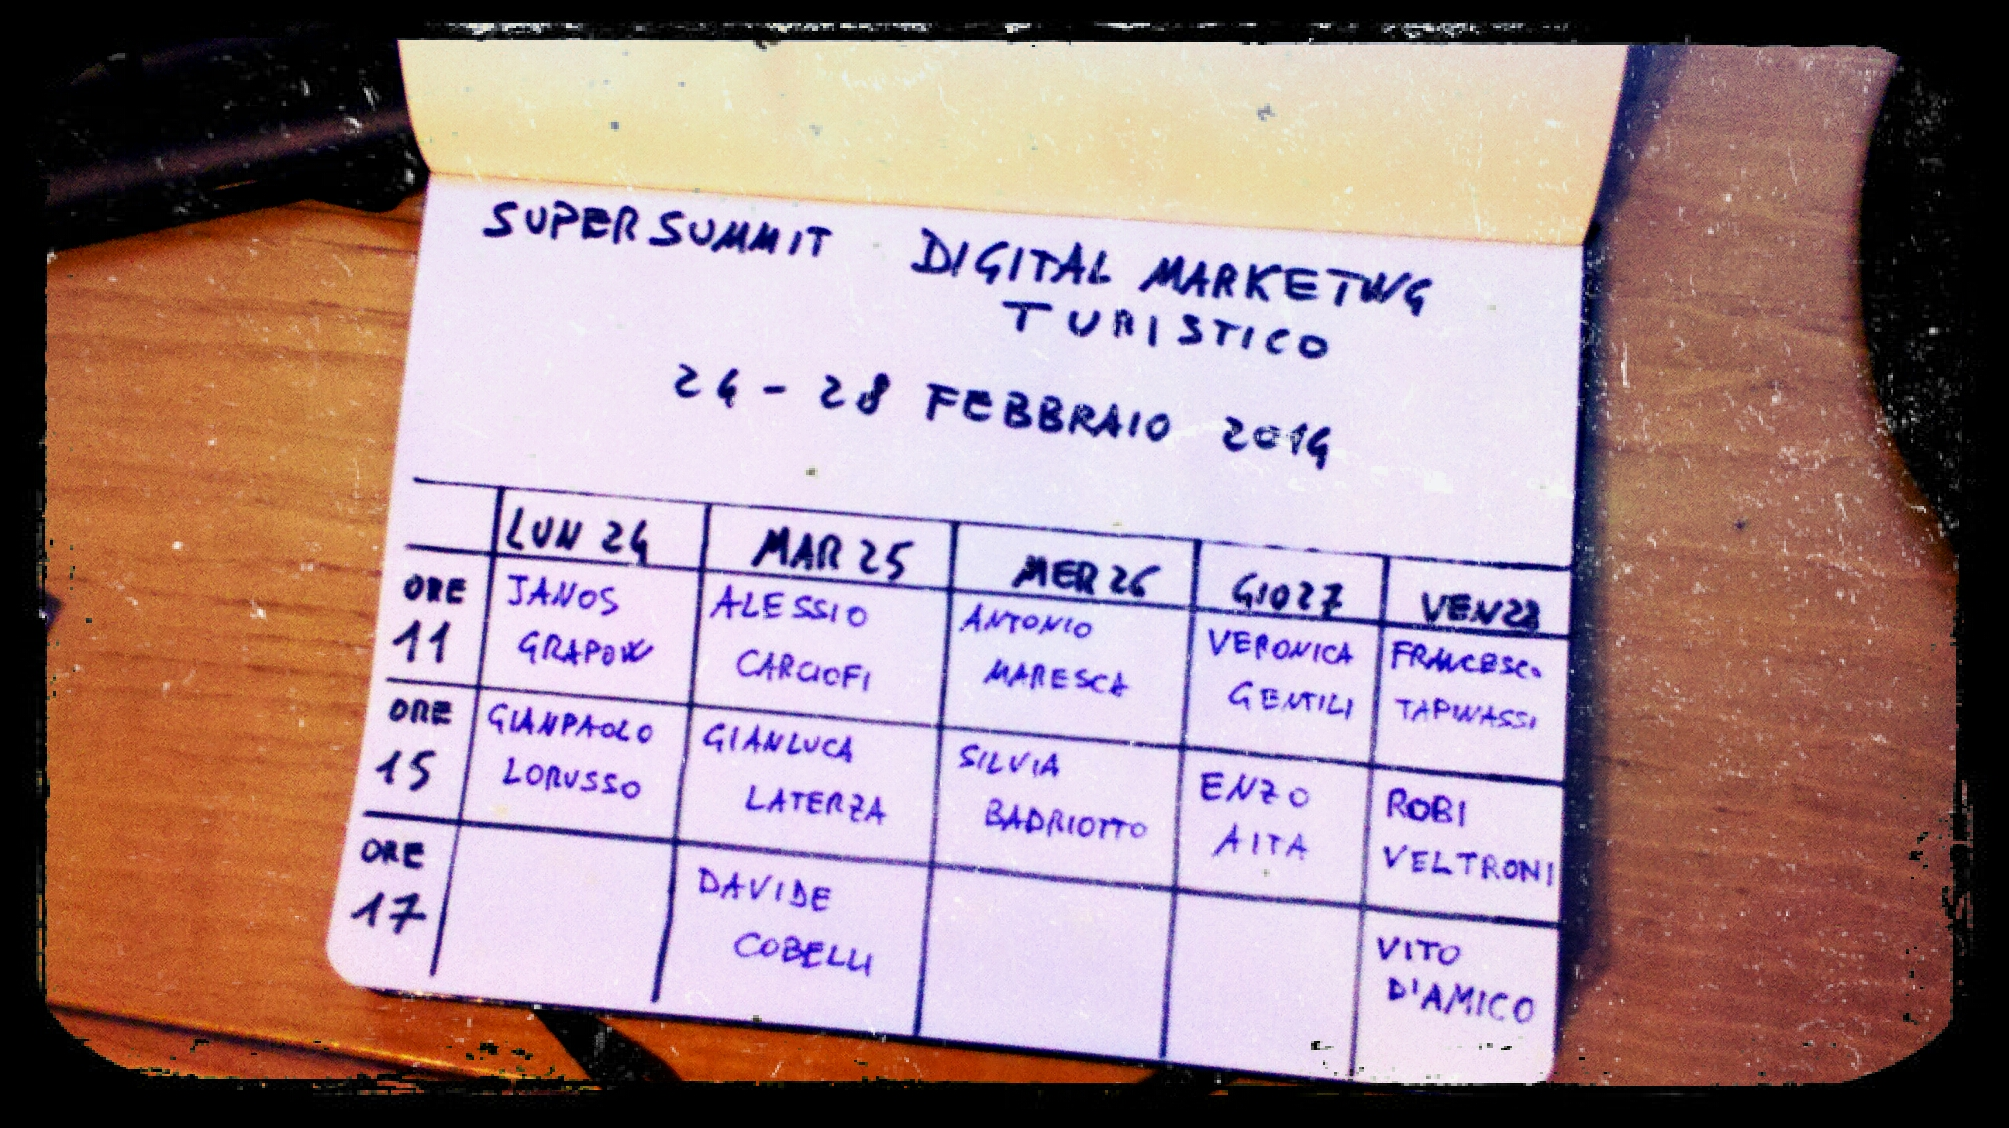 supersummit-programma